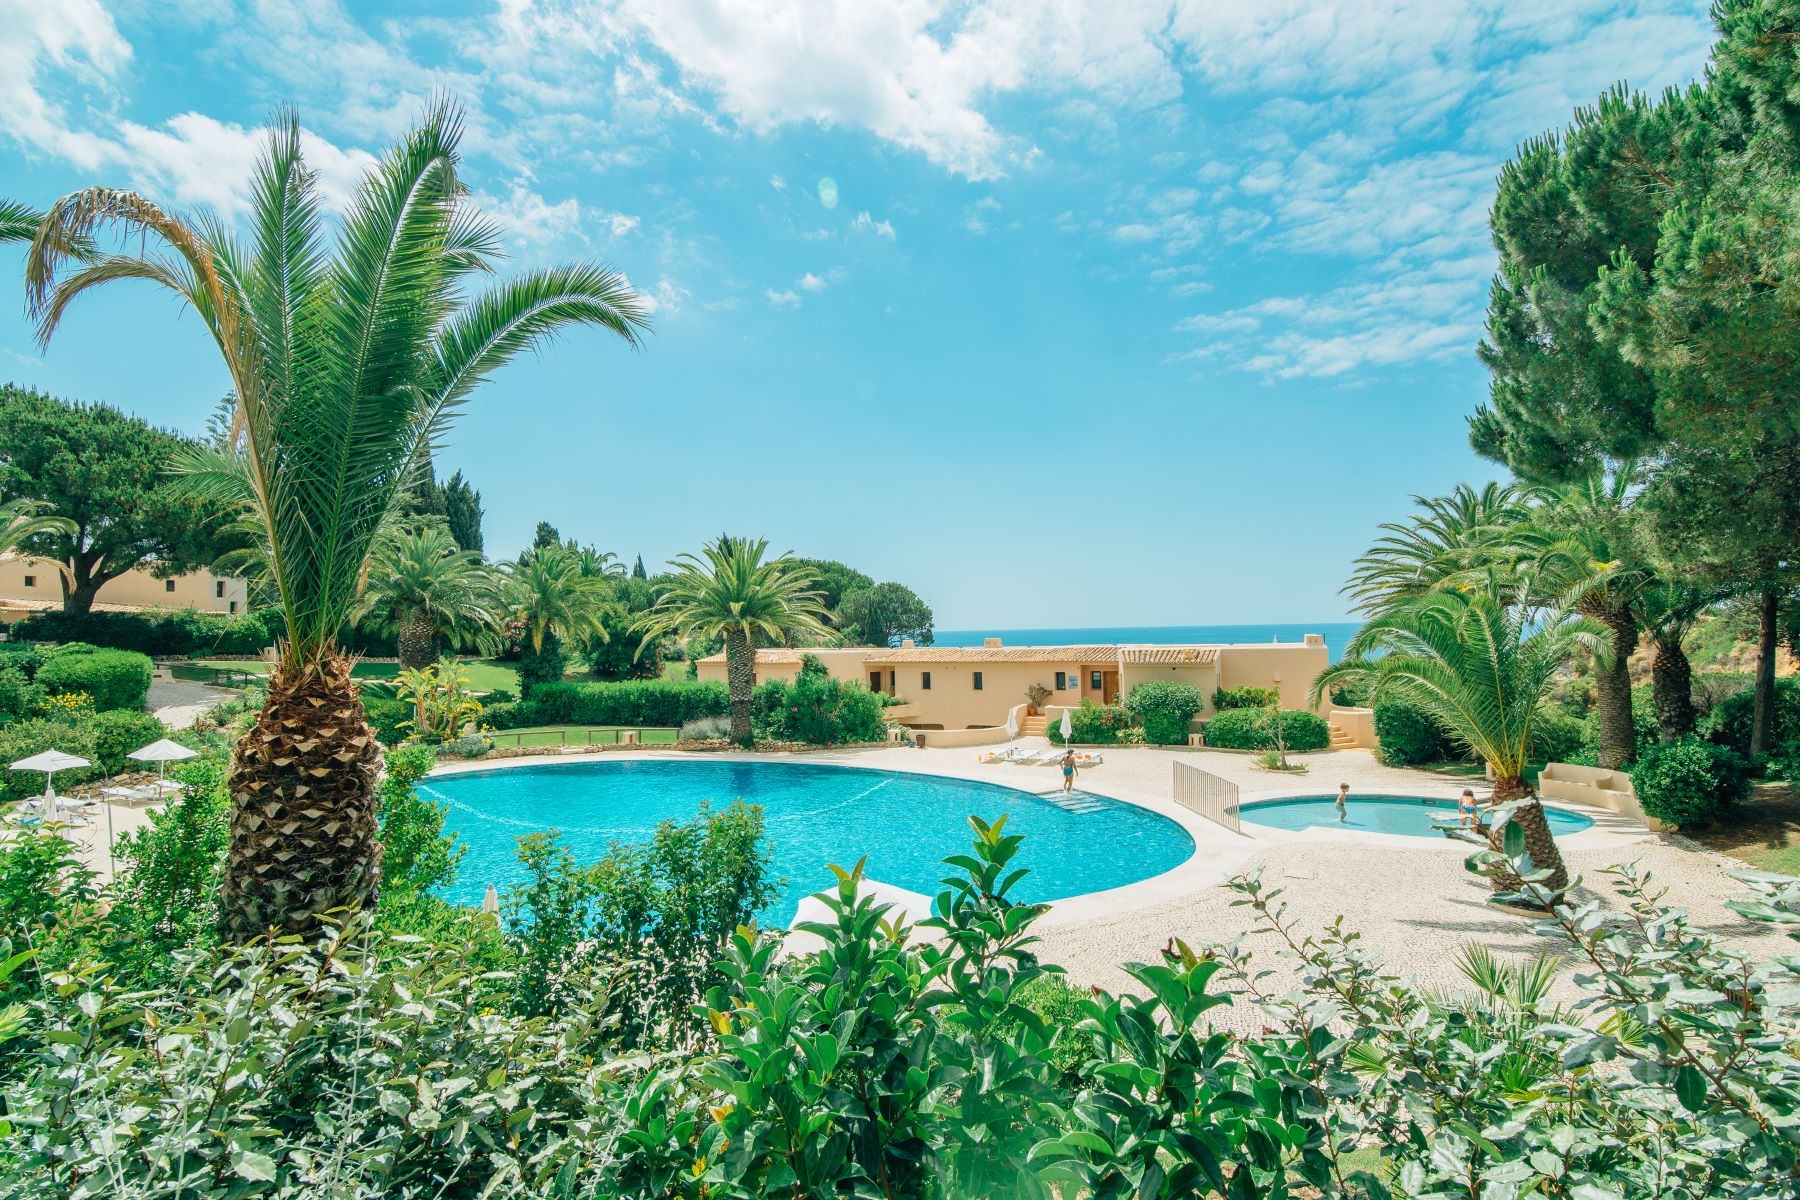 Apartment for Sale at Flat, 3 bedrooms, for Sale Lagoa, Algarve, Portugal